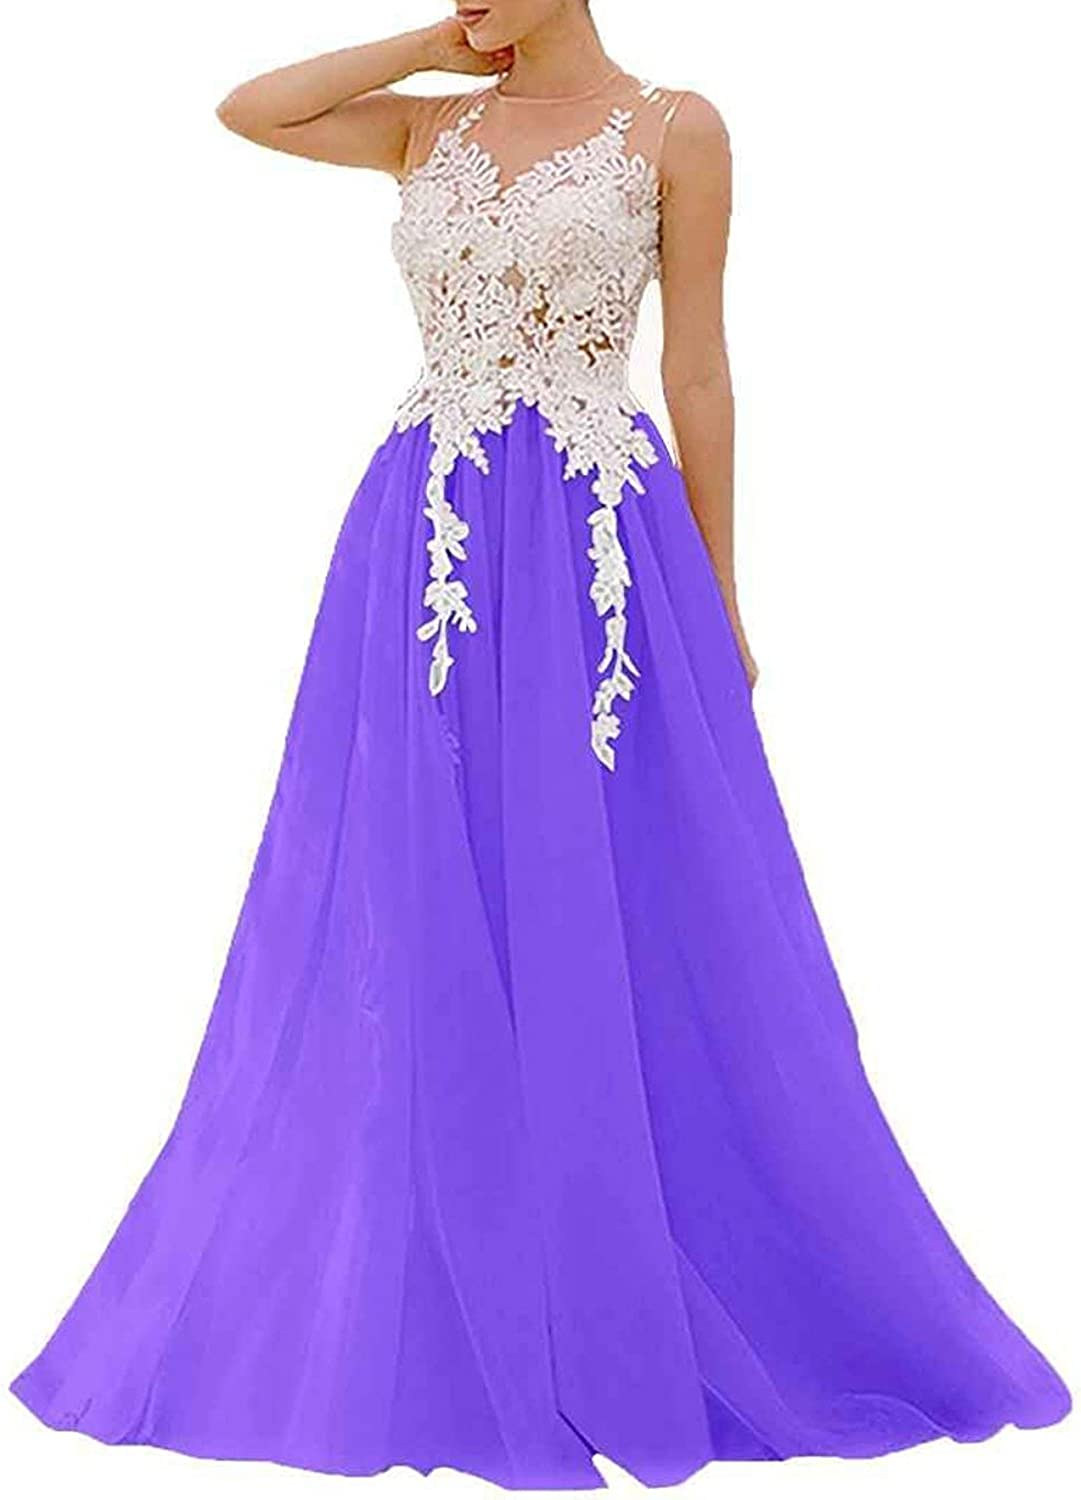 JQLD Women's Lace Applique Sleeveless High Neck Prom Bridesmaid Dresses Tulle Long Party Gowns